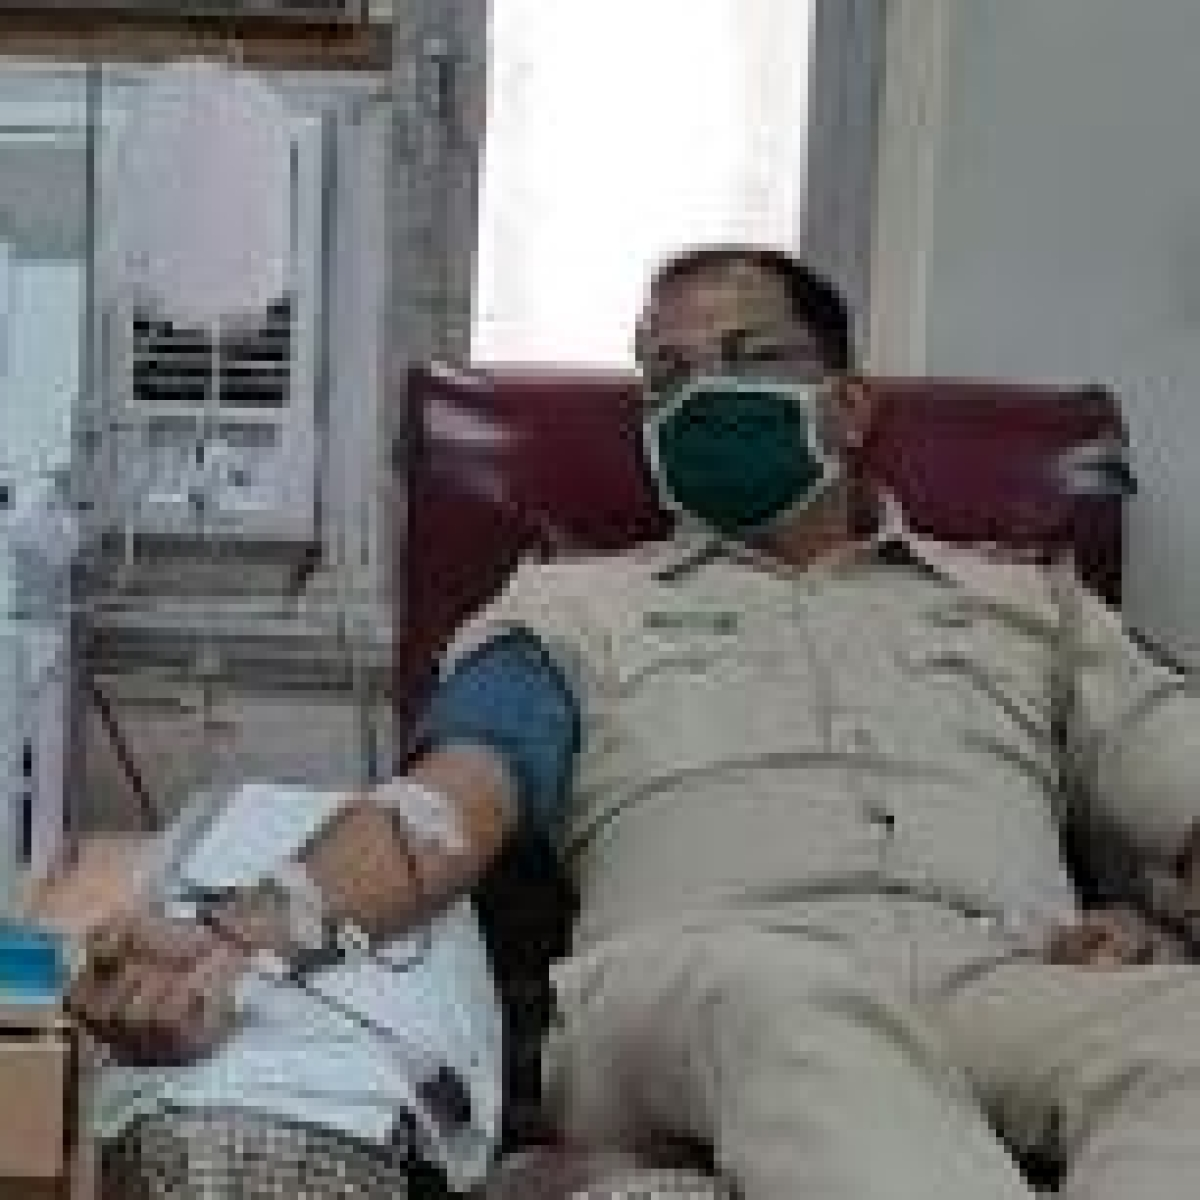 Corona warriors: Mumbai cop rushes to donate platelets on learning of shortage in hospital